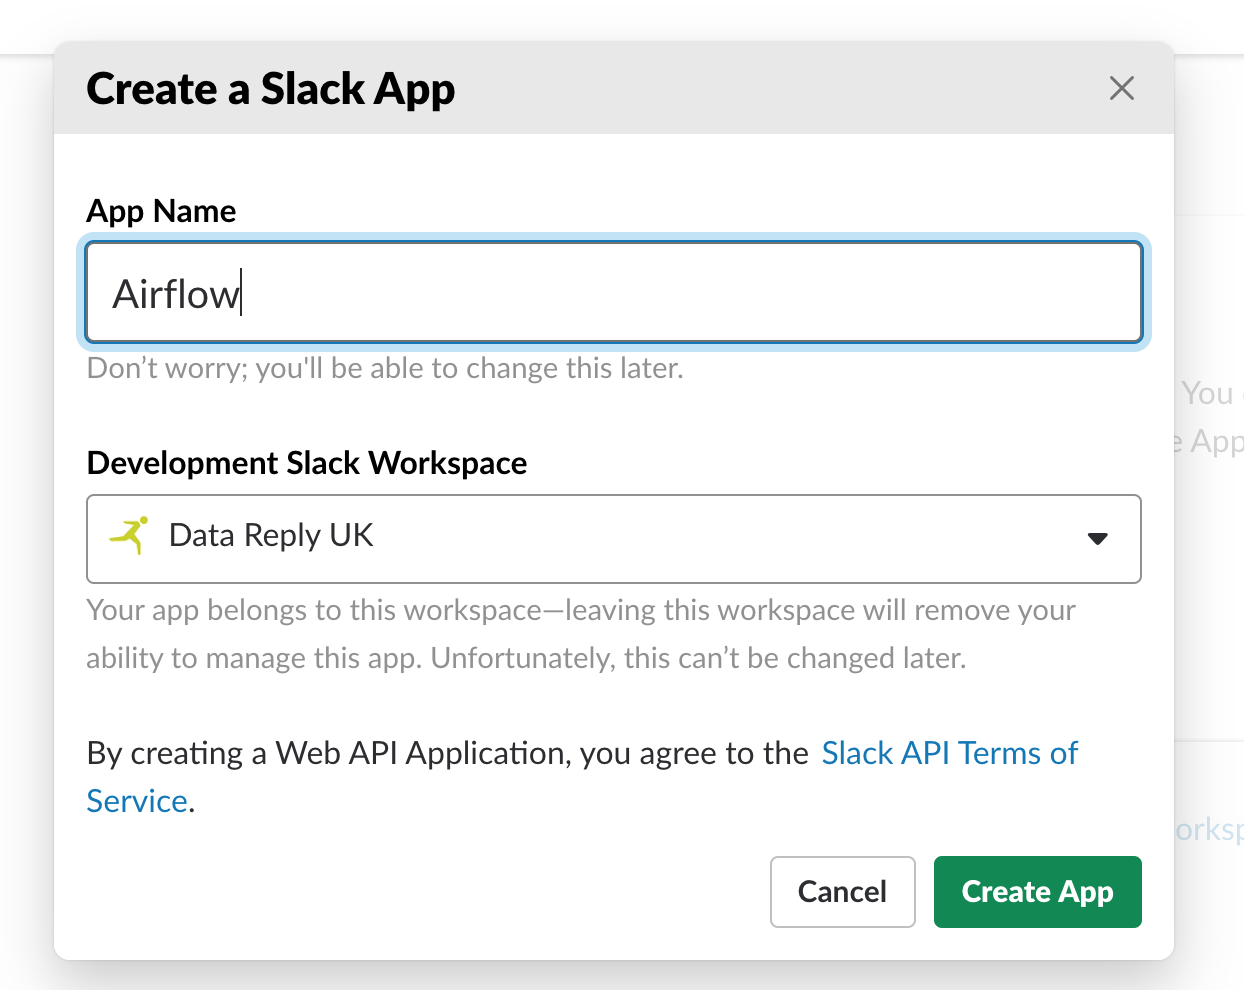 Integrating Slack Alerts in Airflow - DataReply - Medium